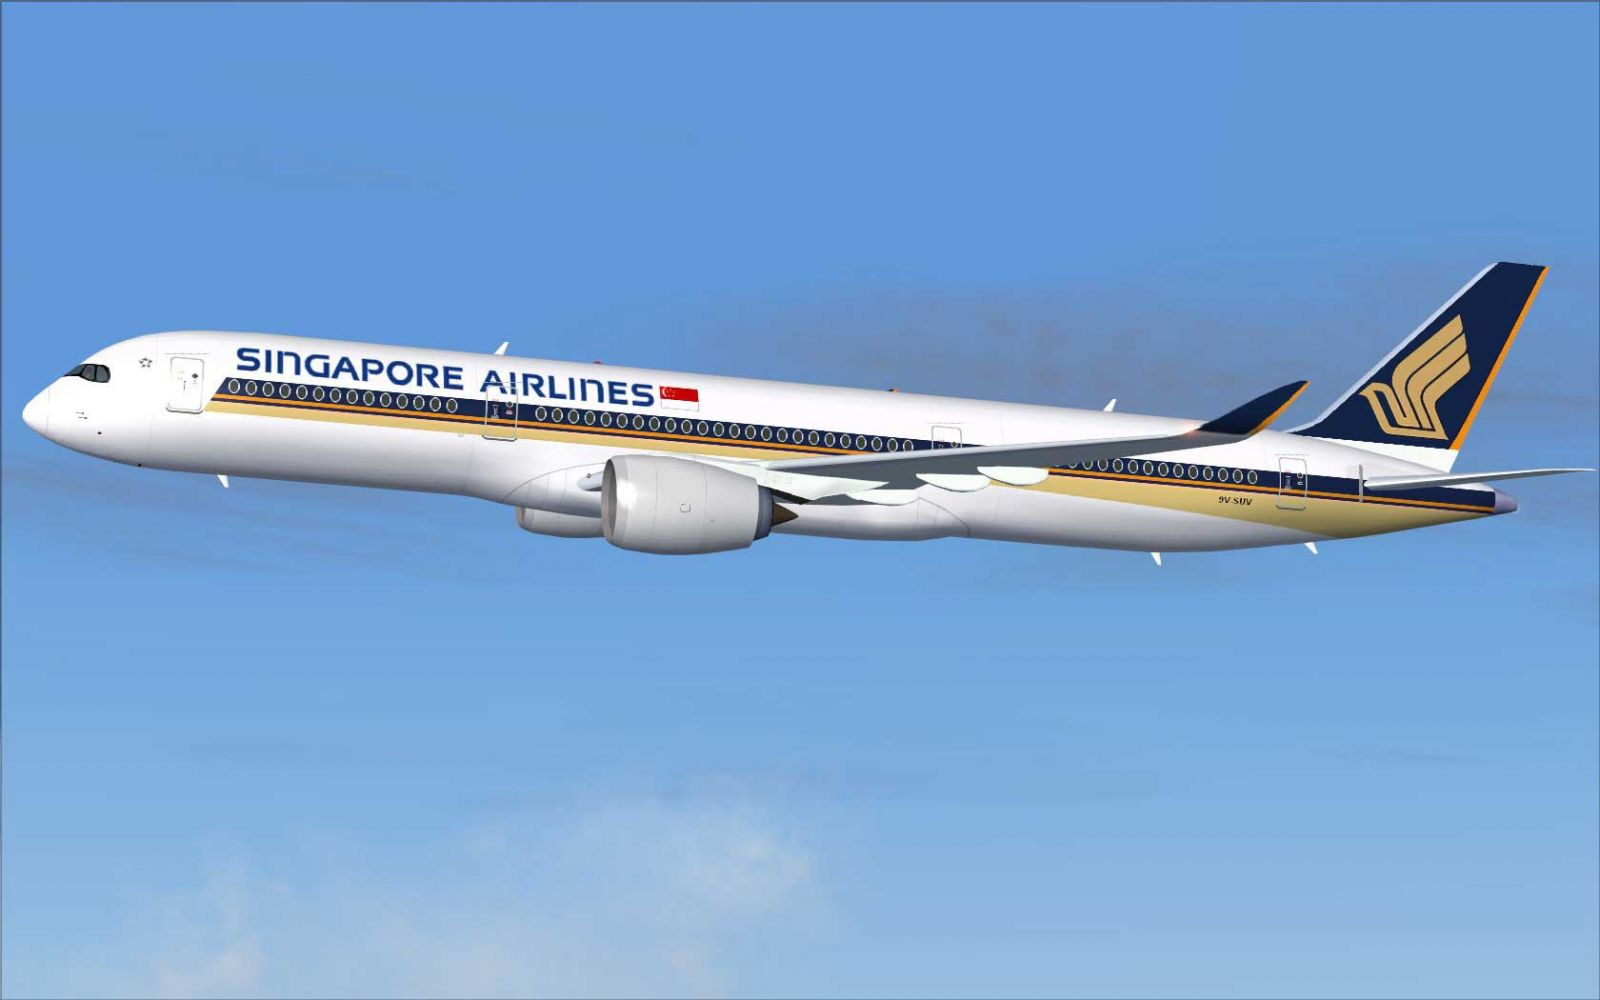 phoenix model planes with Fsx Singapore Airlines Airbus A350 900 Xwb V2 on How To Design A Glider Plane Model At Home furthermore 2481 Traxxas Nitro Sport Stadium Truck 2WD 1 10 RTR moreover Beautiful Mellisa Clarke Hd Wallpaper in addition Star Wars Slayn And Korpil K 80 Swivel Starfighter 596559877 moreover Coolest Retired Planes.